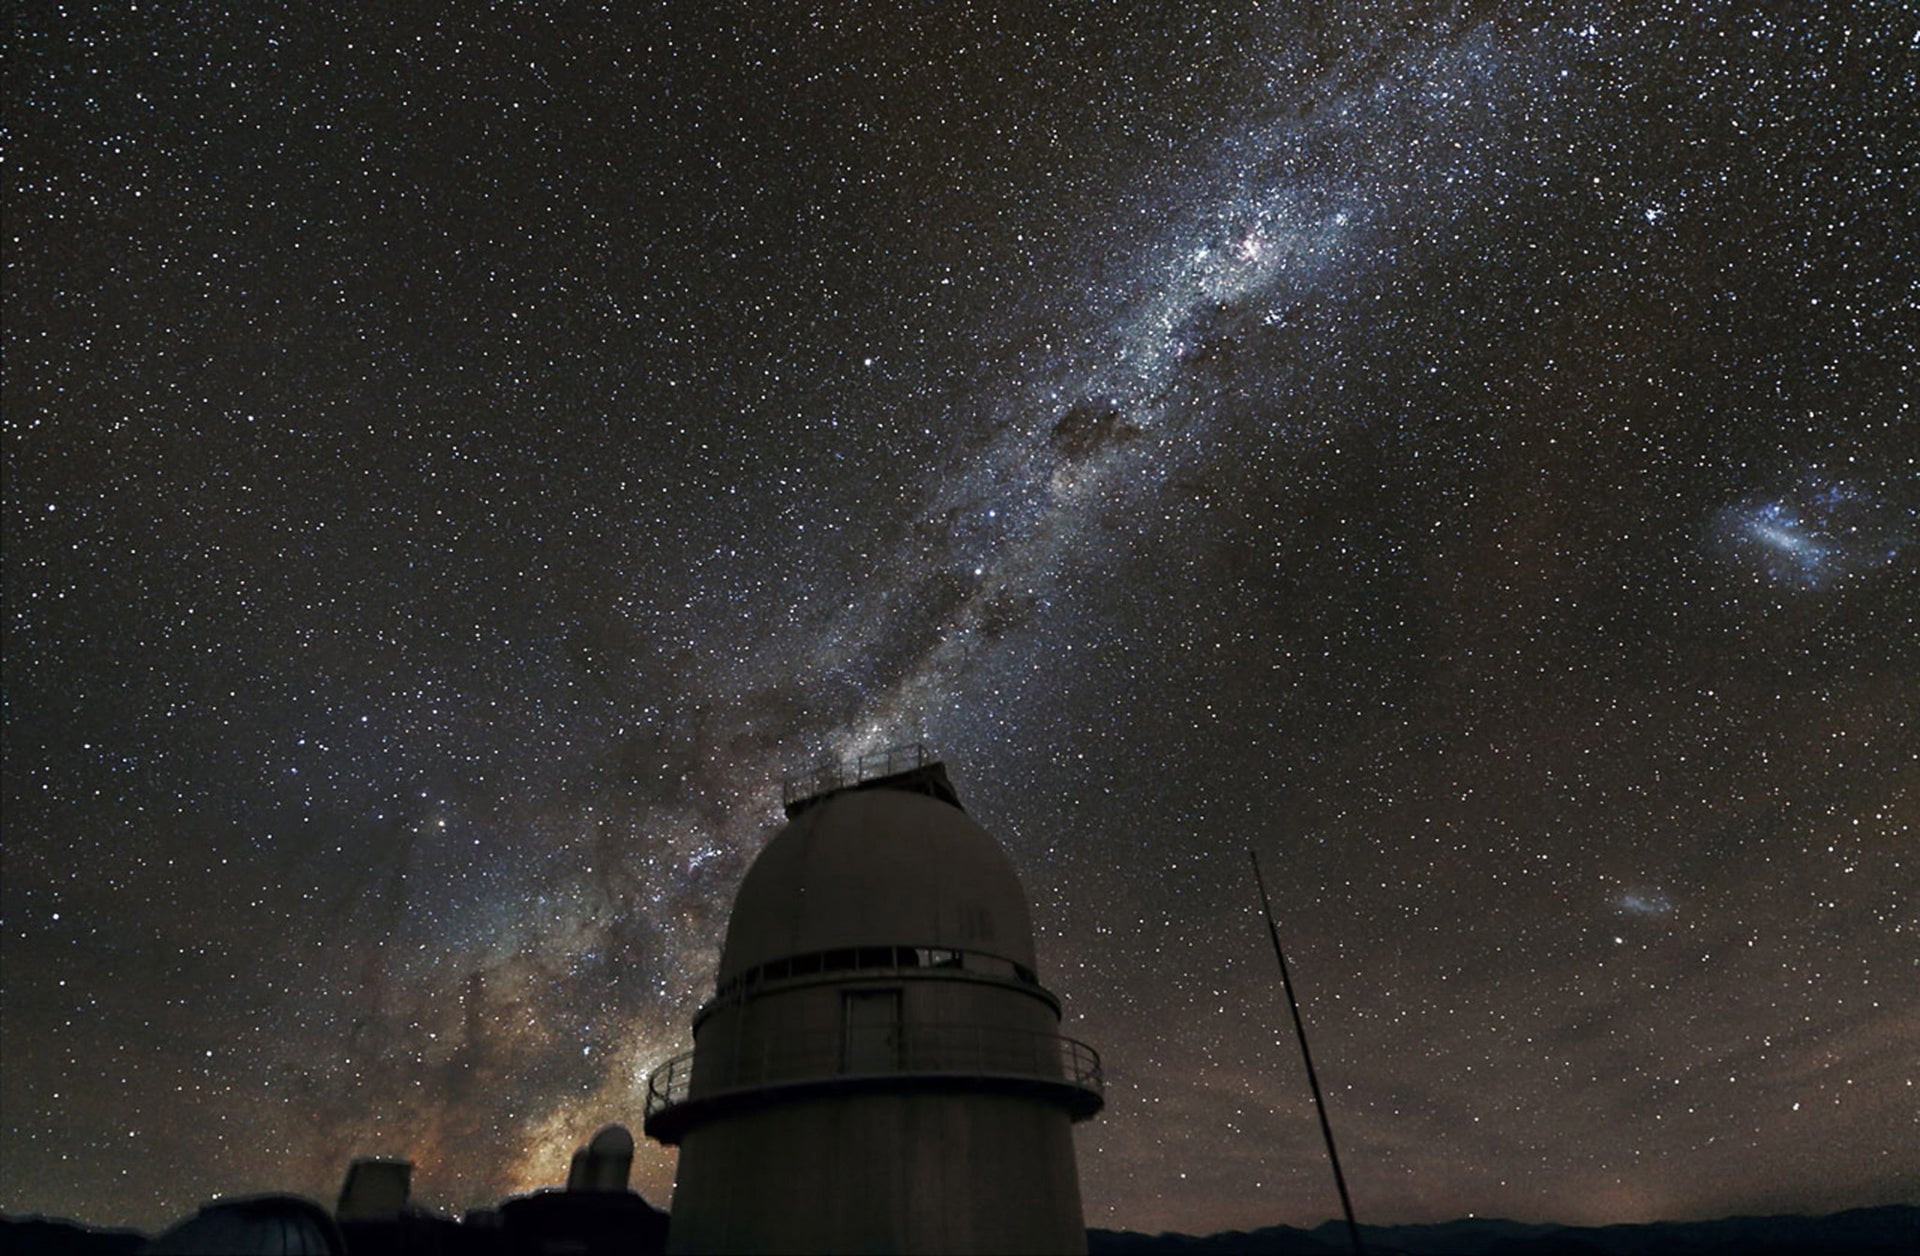 The Observatory in Chile.